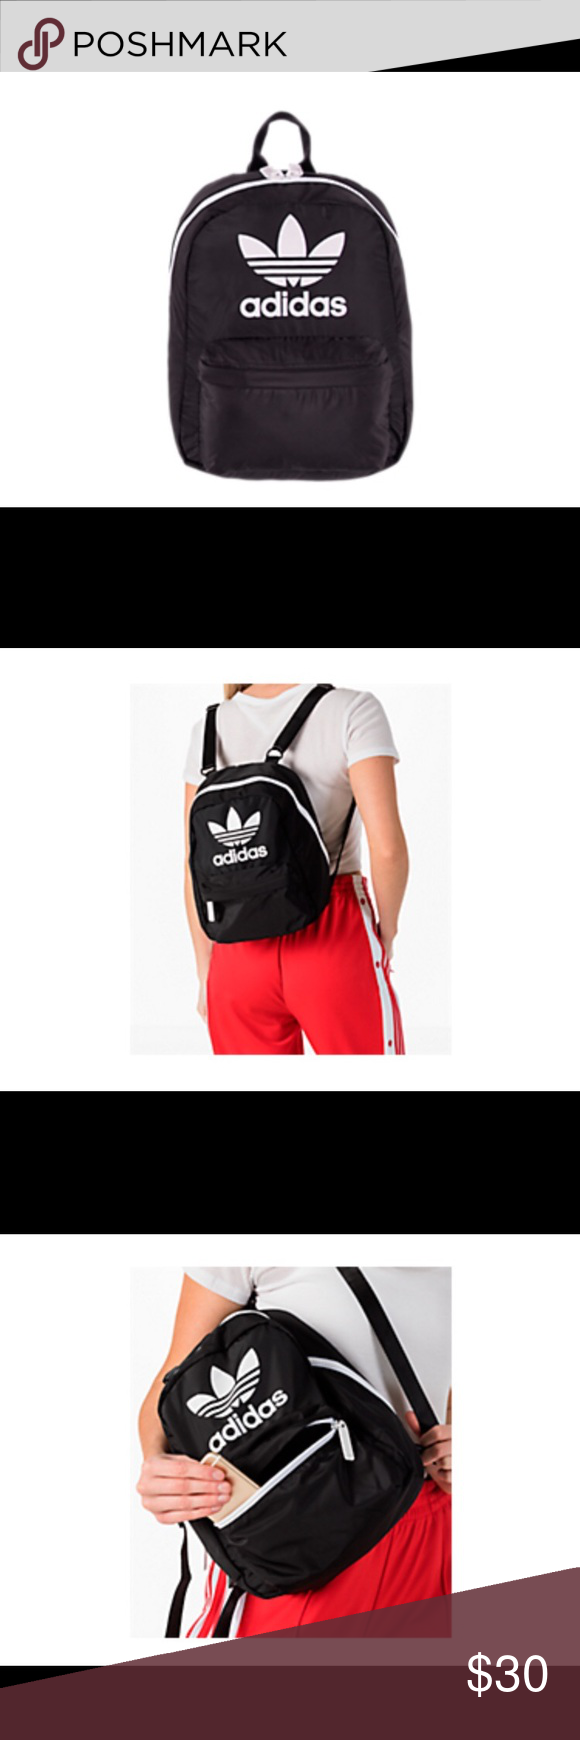 f4a46b6b0229 Adidas National Compact Backpack Brand new Front zip lined pockets ...